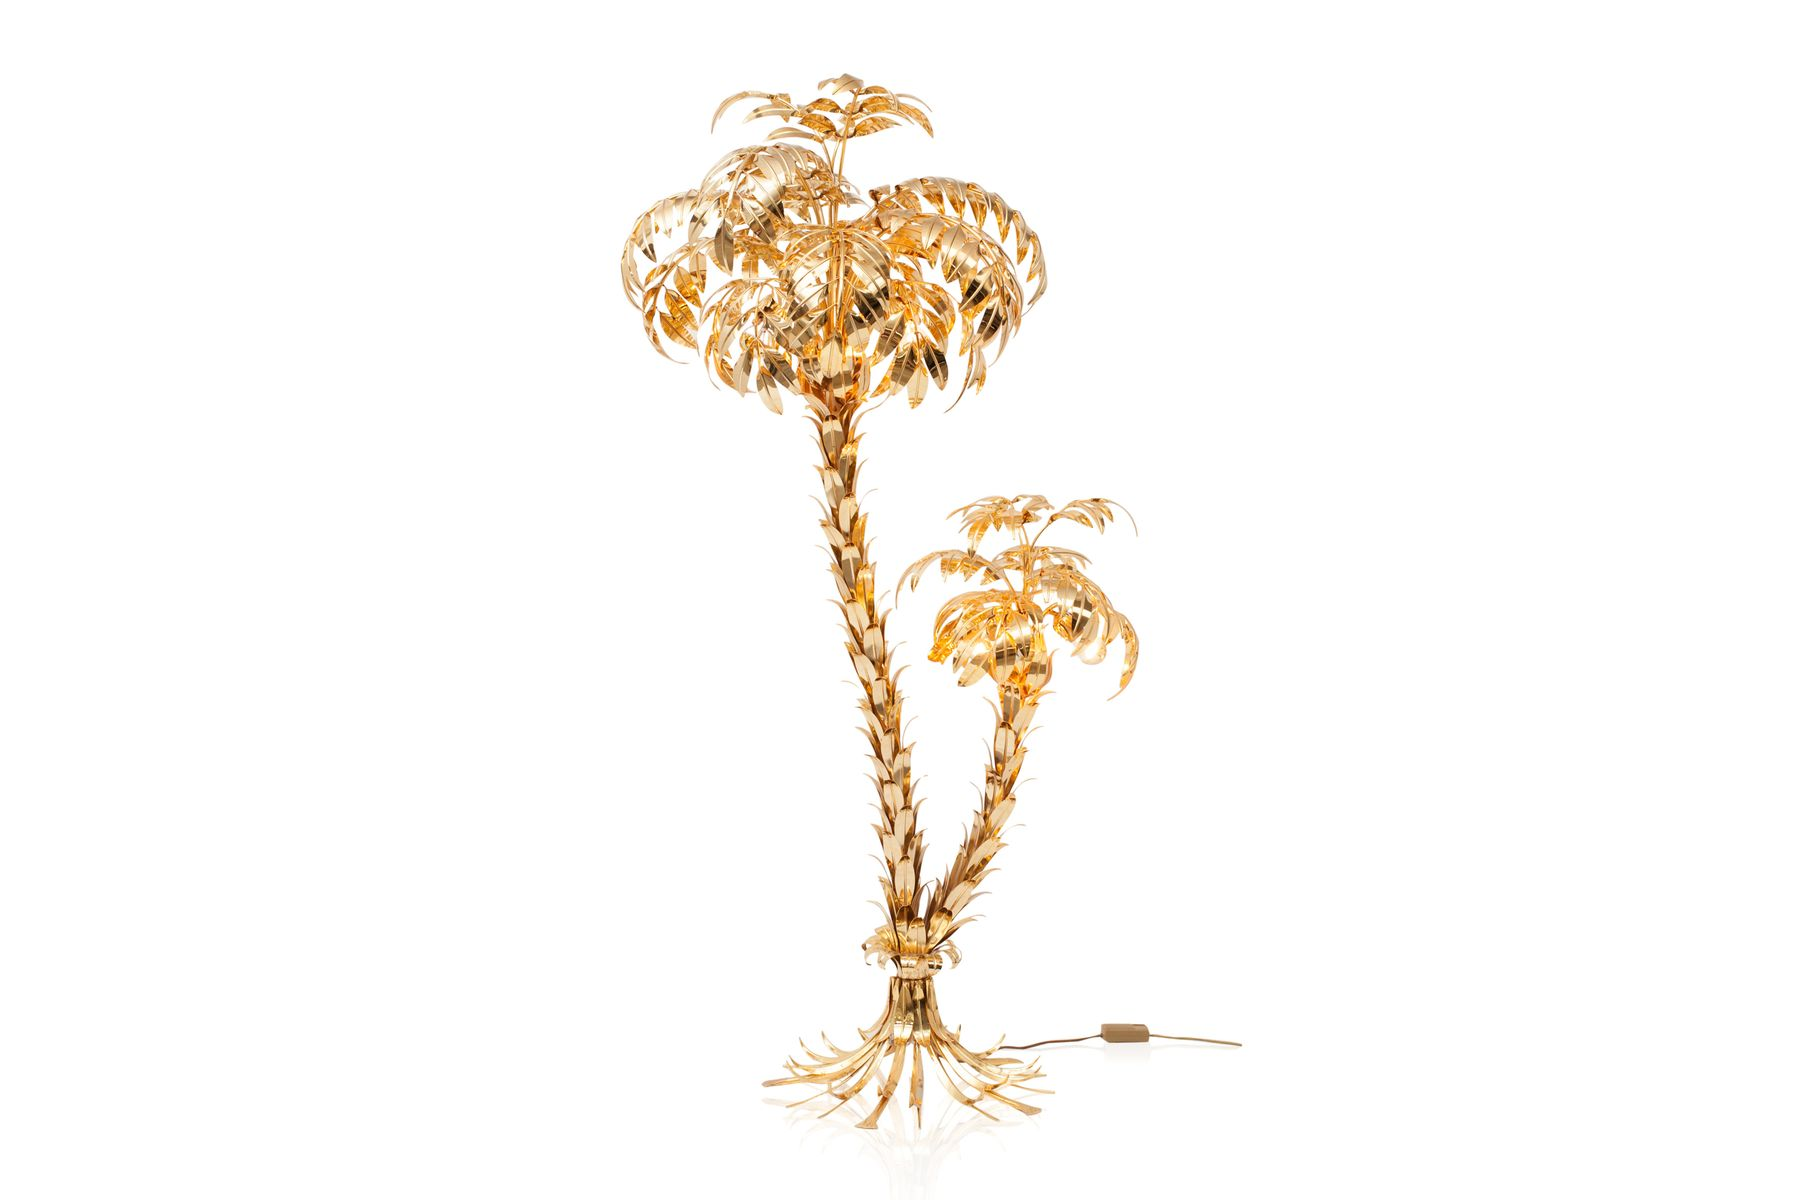 Vintage Brass Palmtree Floor Lamp by Hans Kögl, 1970s for sale at Pamono